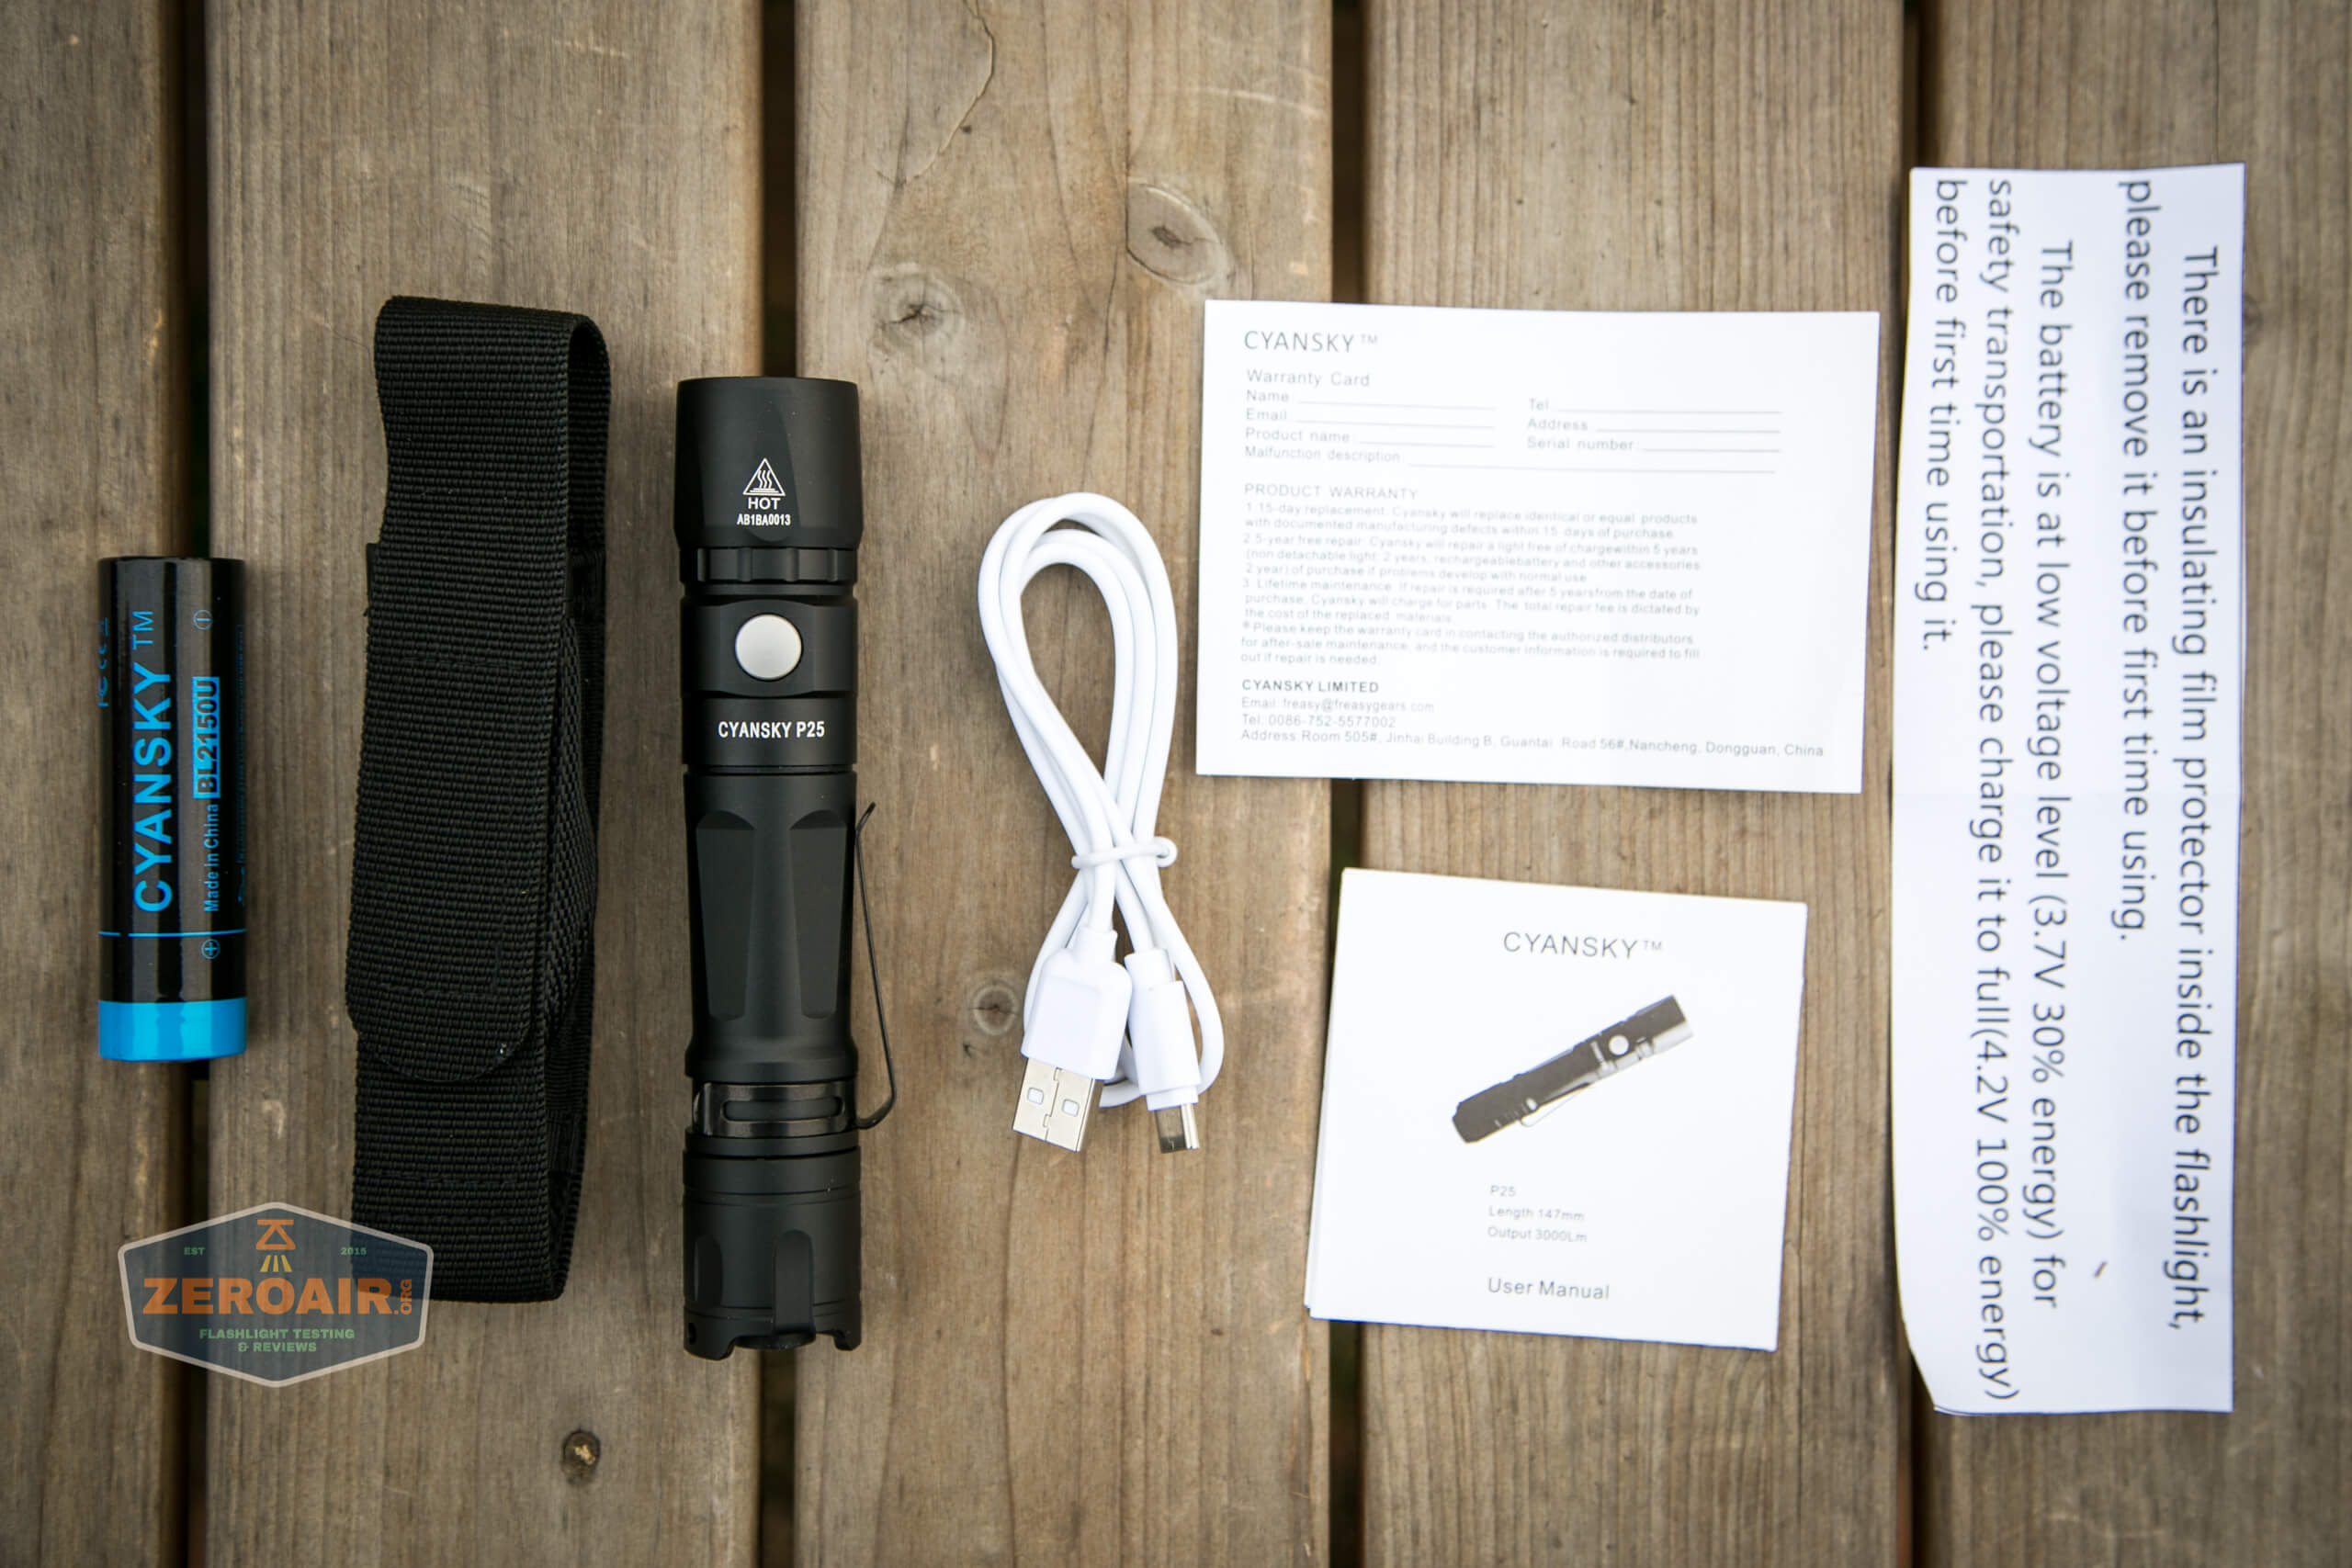 Cyansky P25 Flashlight what's included